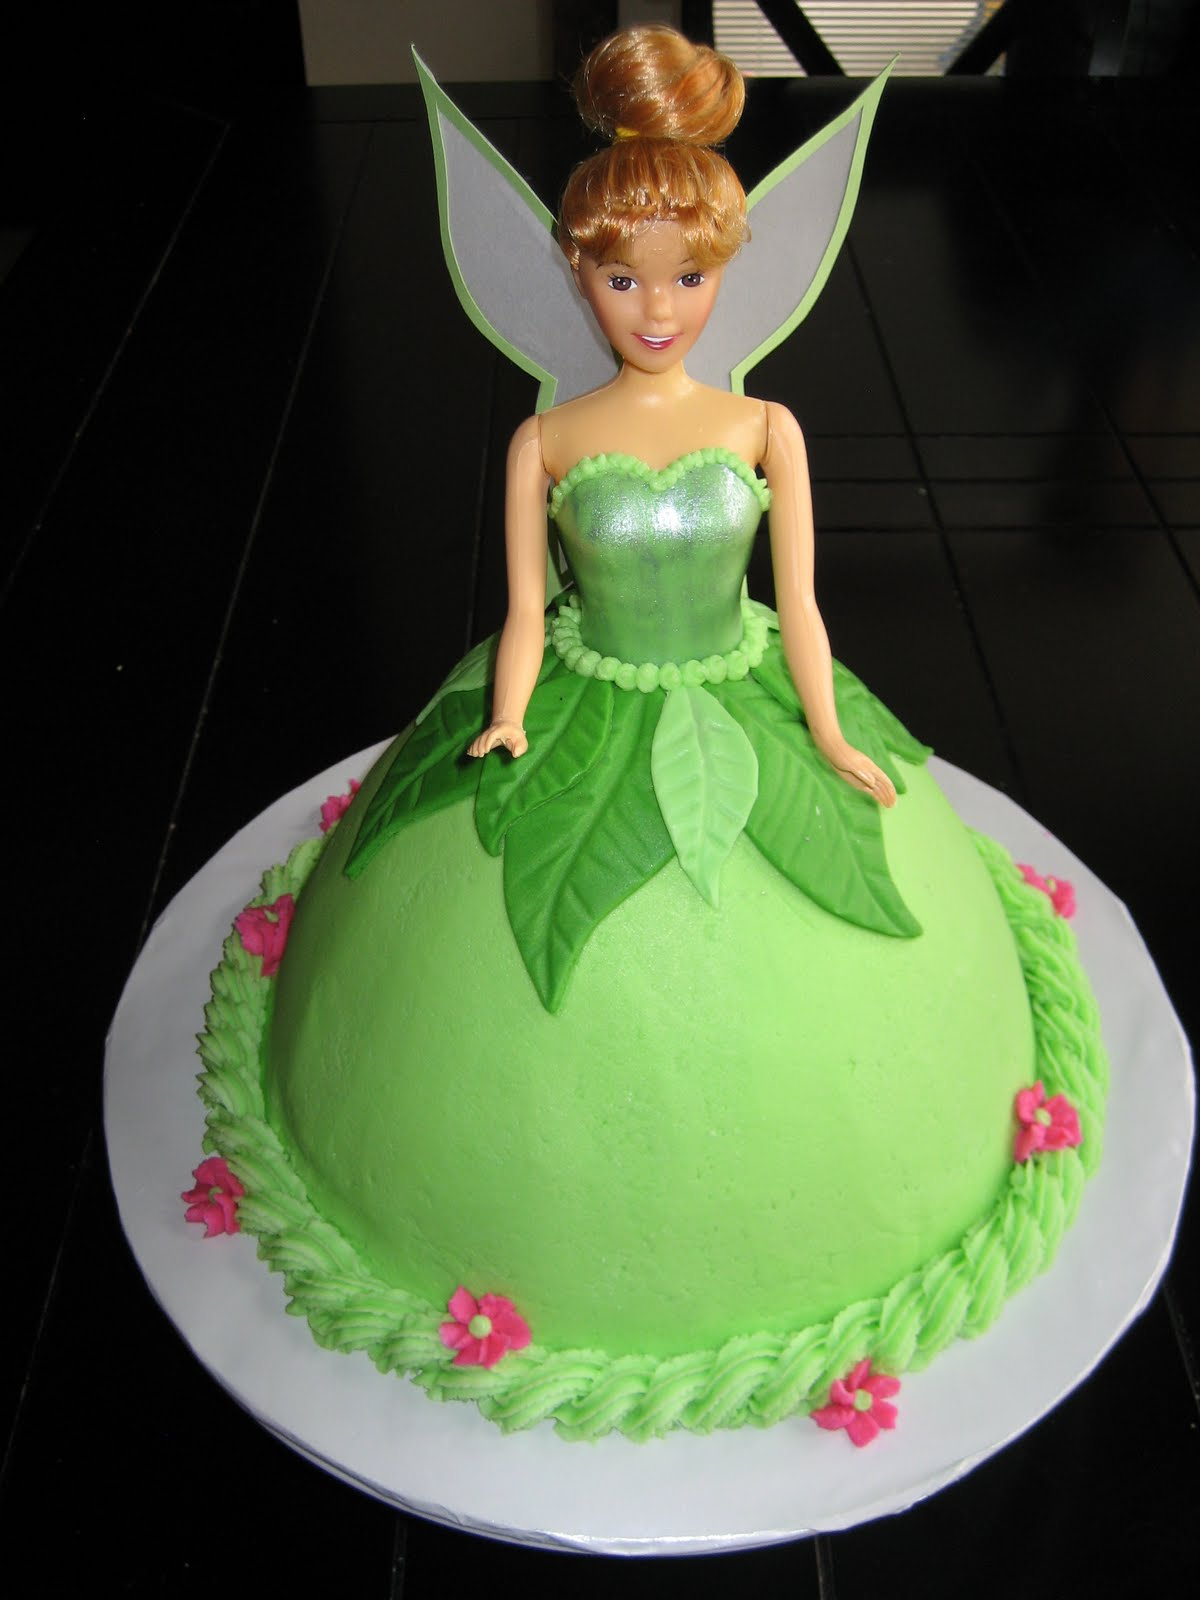 Tinkerbell Doll Cake Design : Tinkerbell Doll Cake Car Interior Design